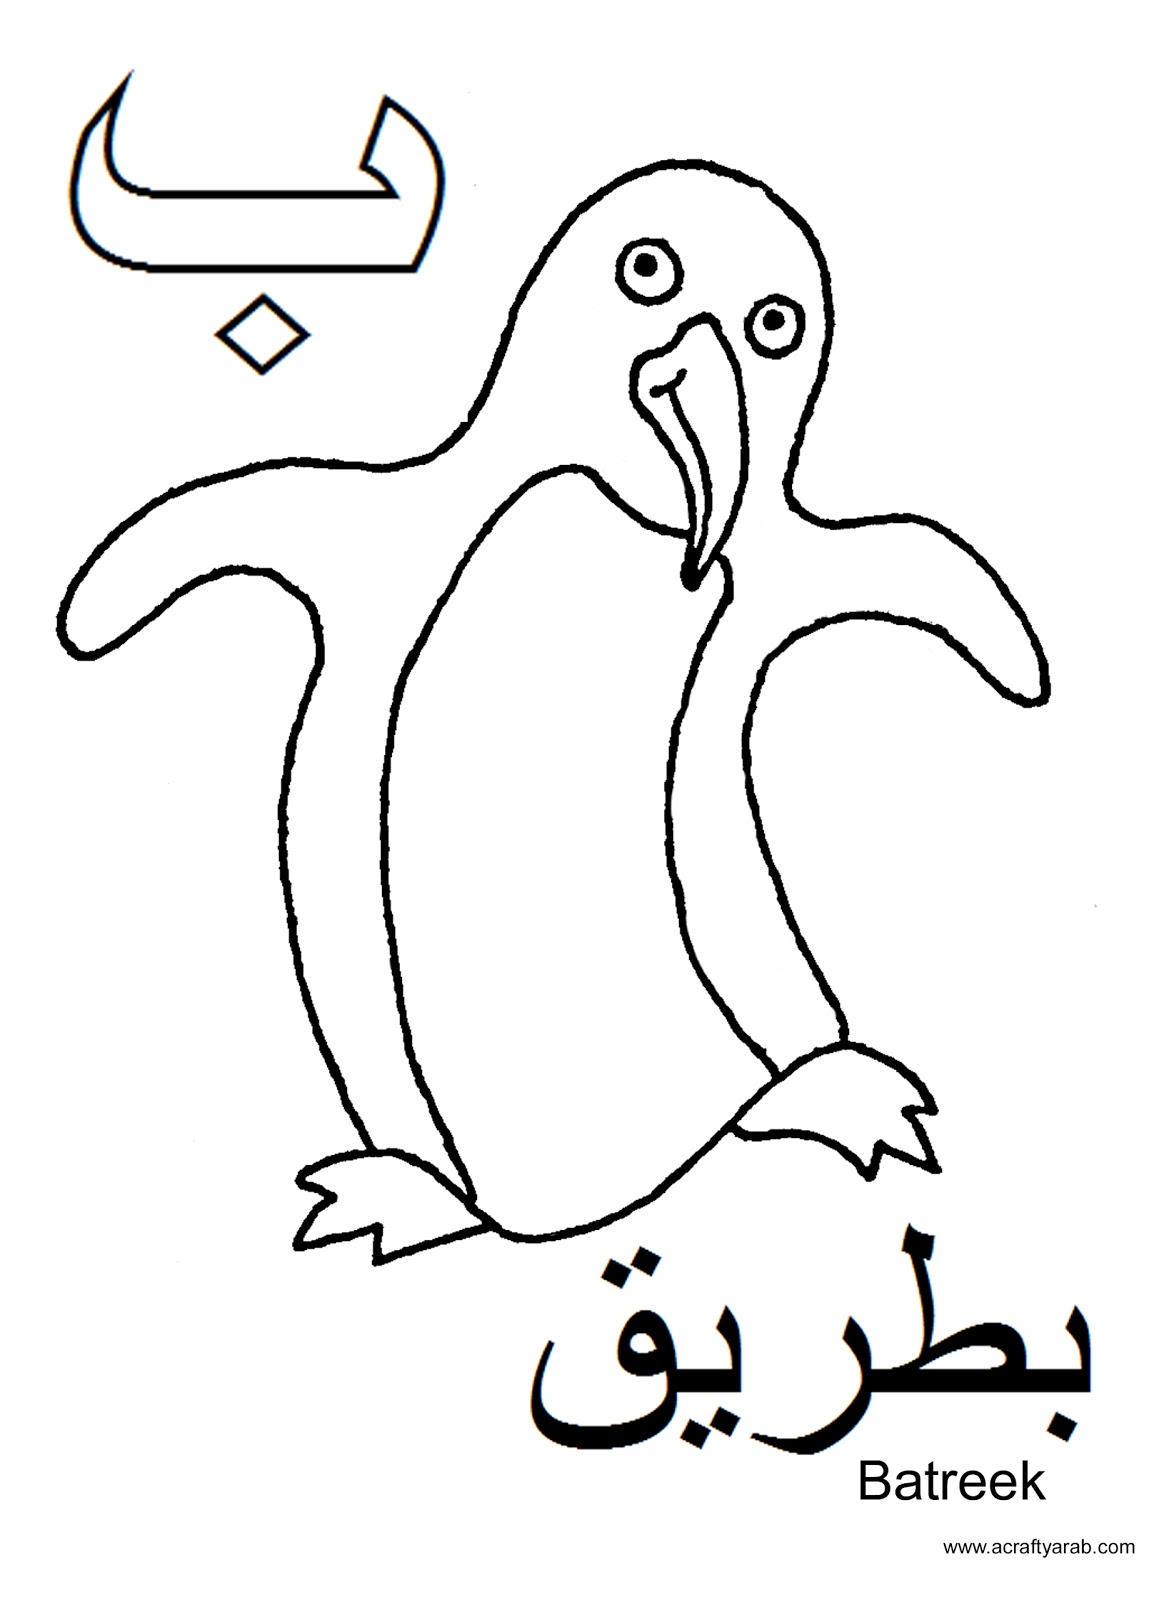 A Crafty Arab Arabic Alphabet